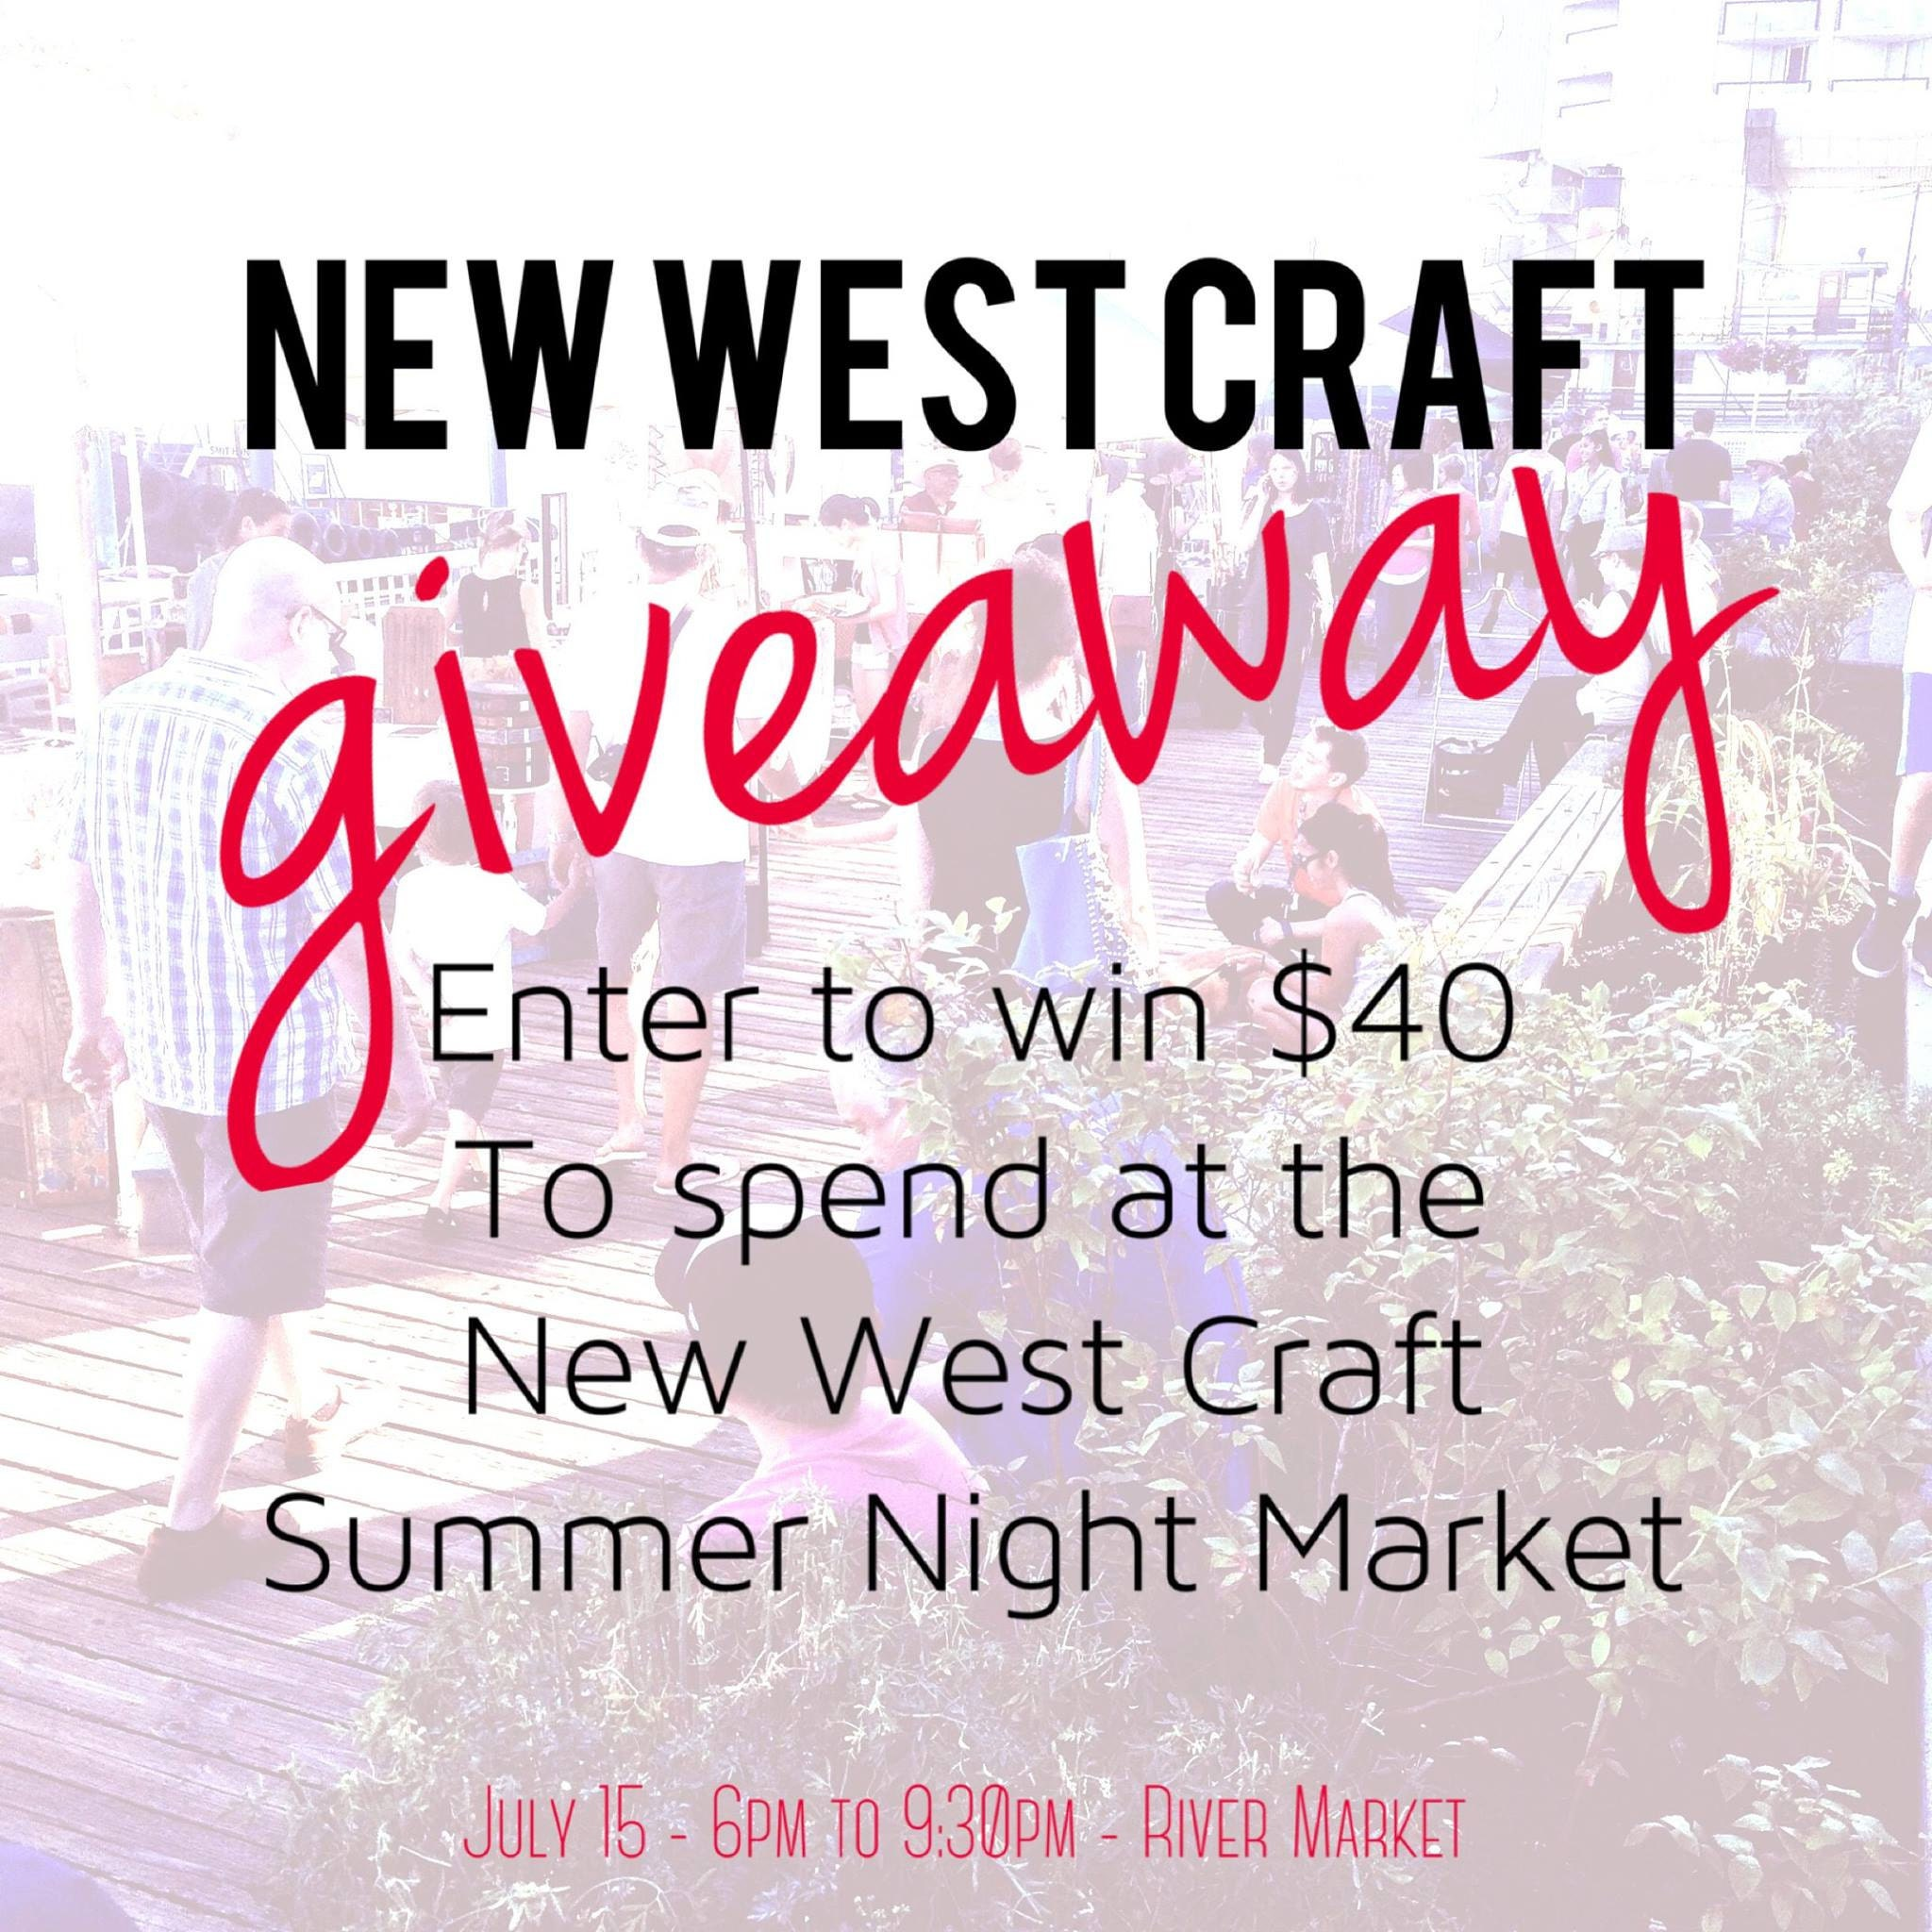 $40 Giveaway for Summer Night Market